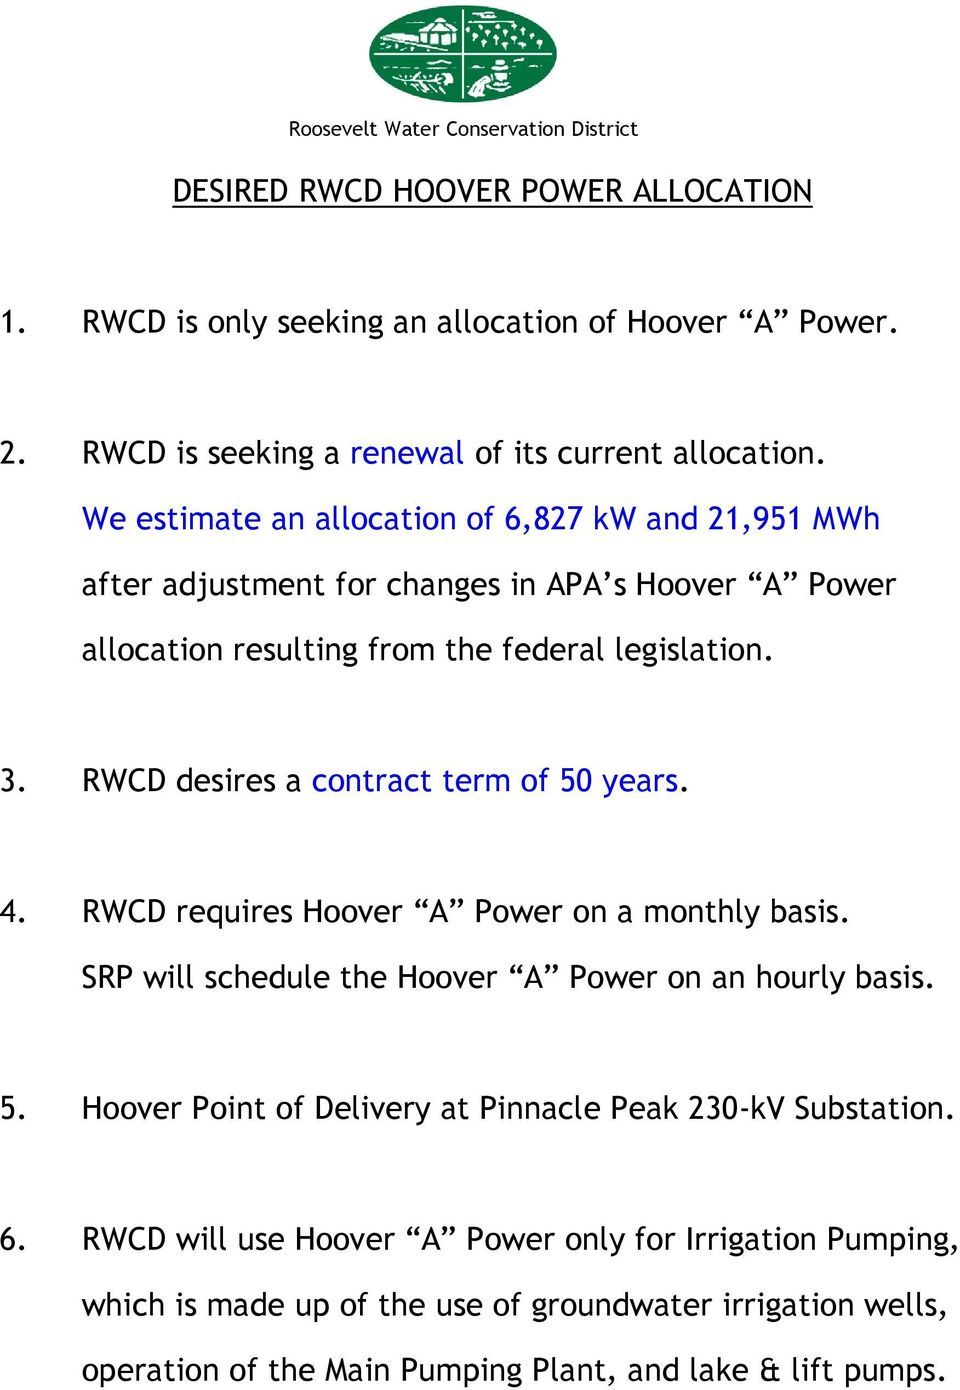 RWCD desires a contract term of 50 years. 4. RWCD requires Hoover A Power on a monthly basis. SRP will schedule the Hoover A Power on an hourly basis. 5. Hoover Point of Delivery at Pinnacle Peak 230-kV Substation.